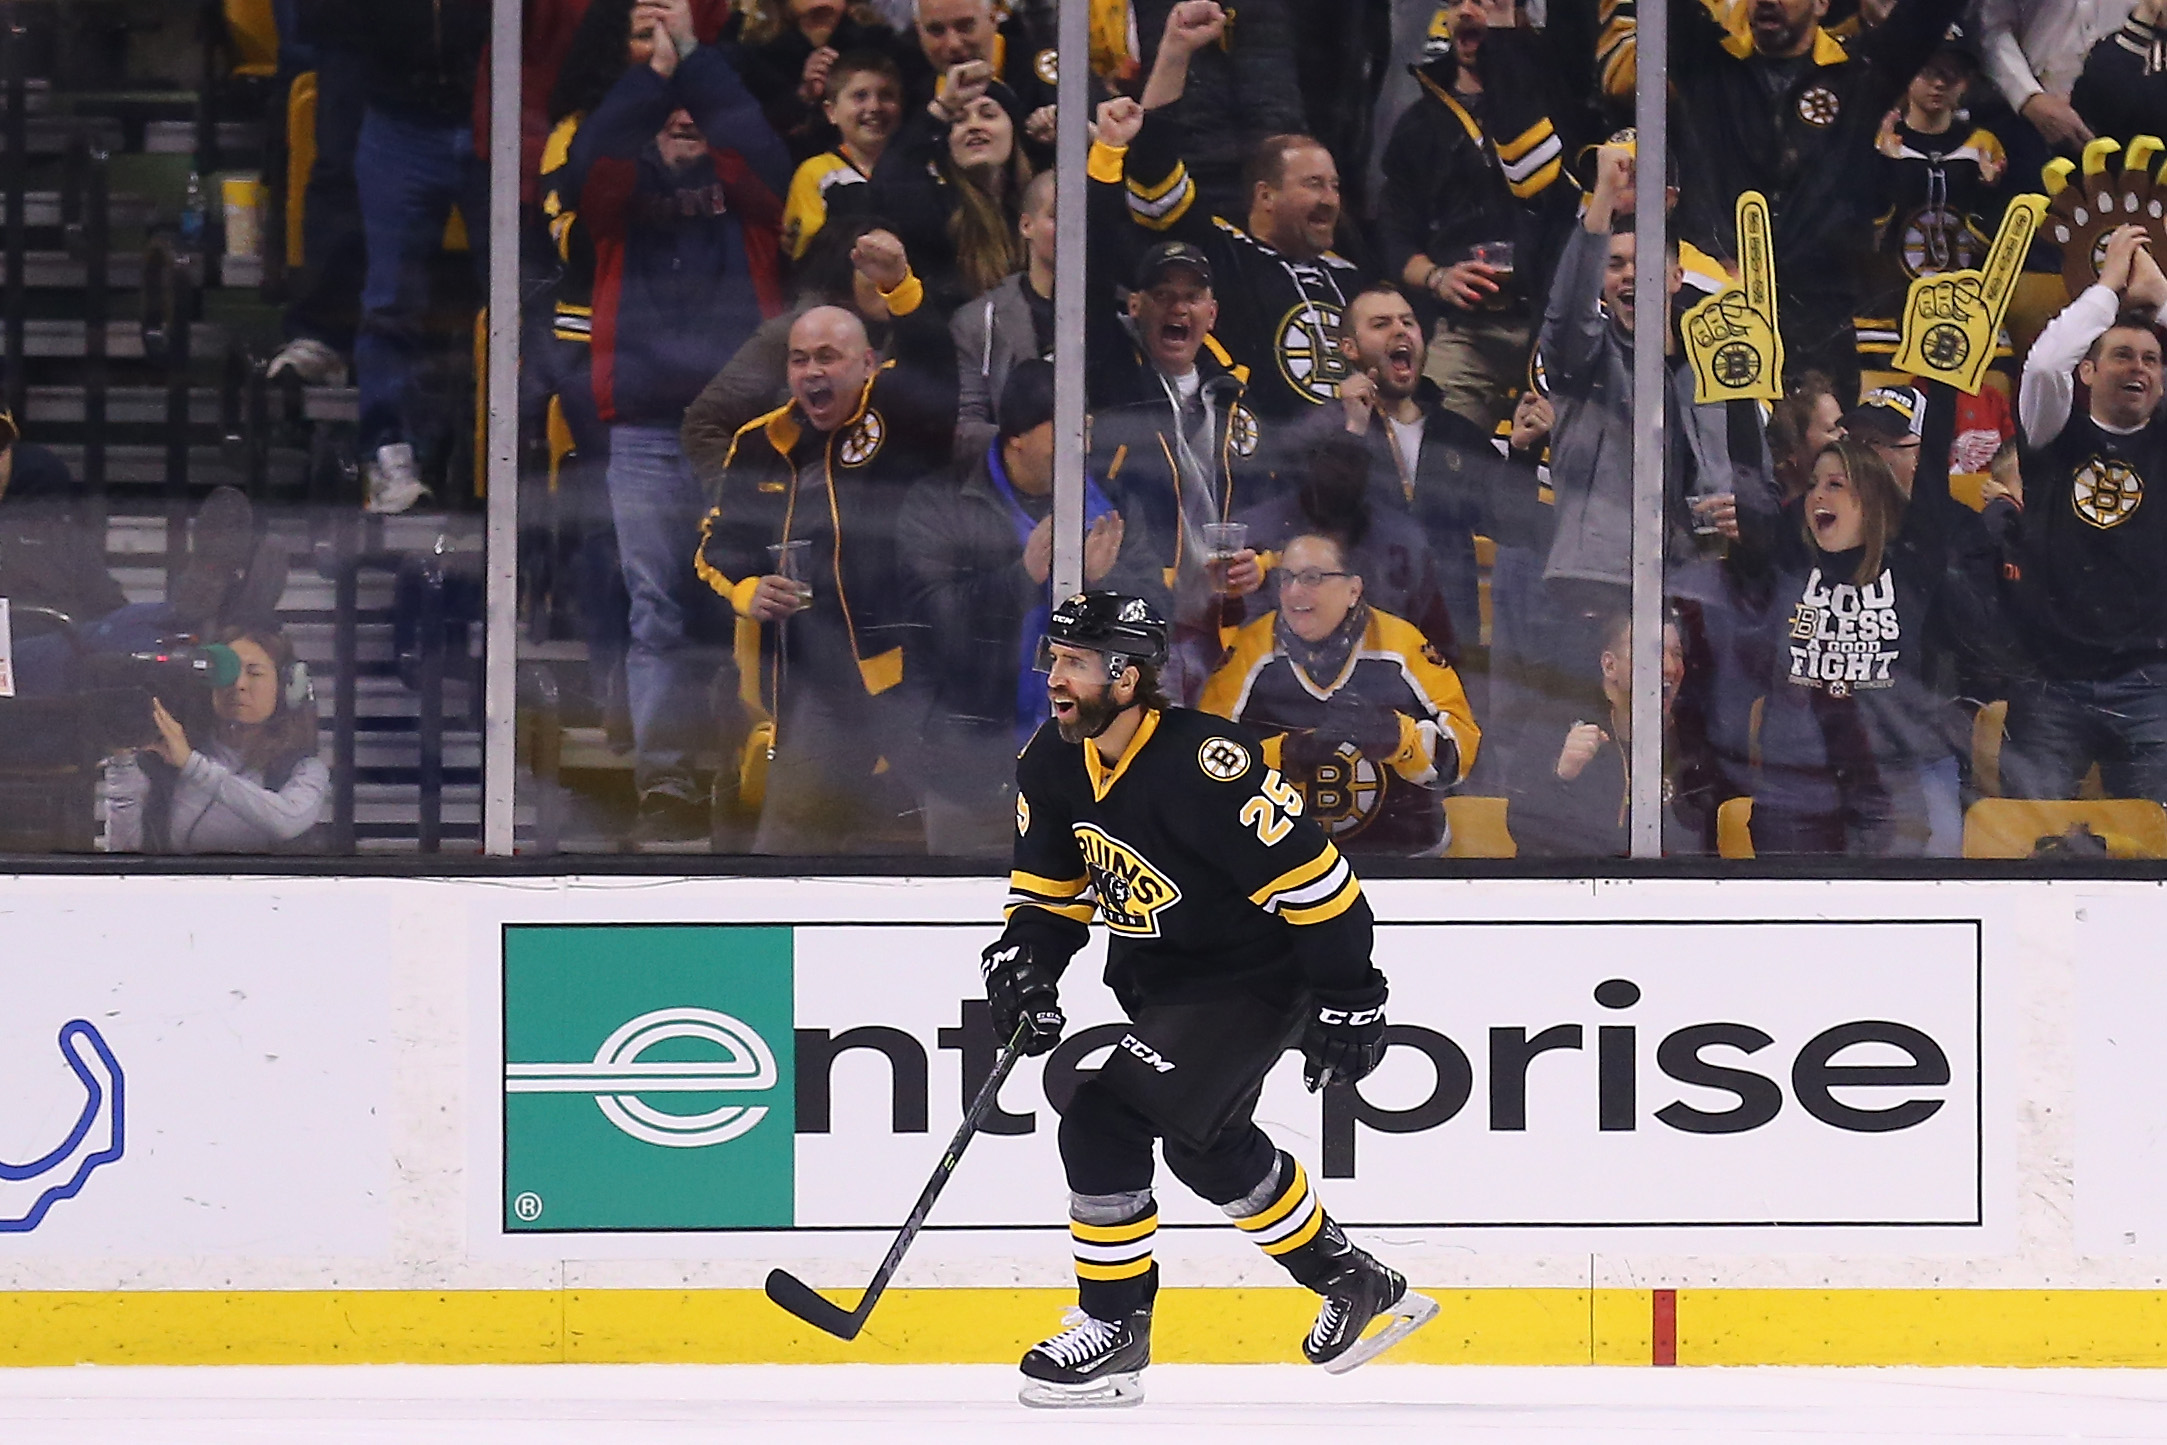 Getting the assist- Max Talbot